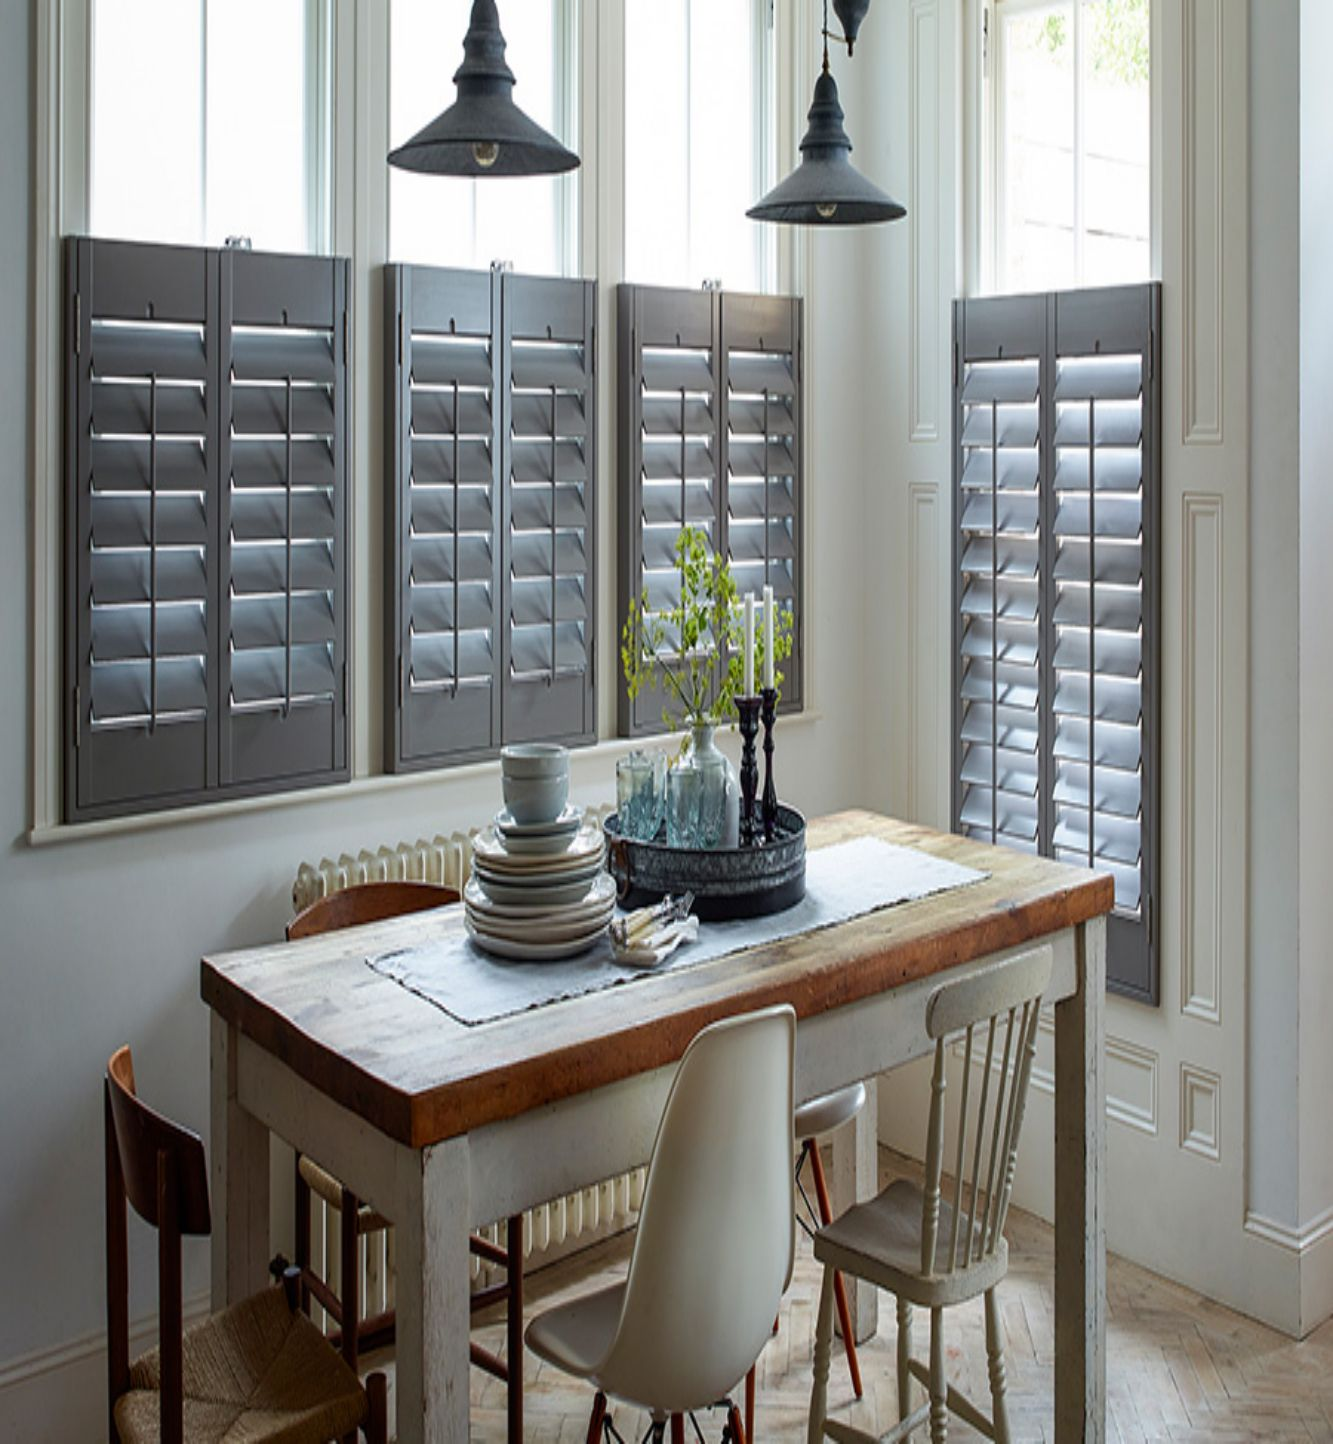 Cafe Style Shutter Helps You To Match Up With A Modern